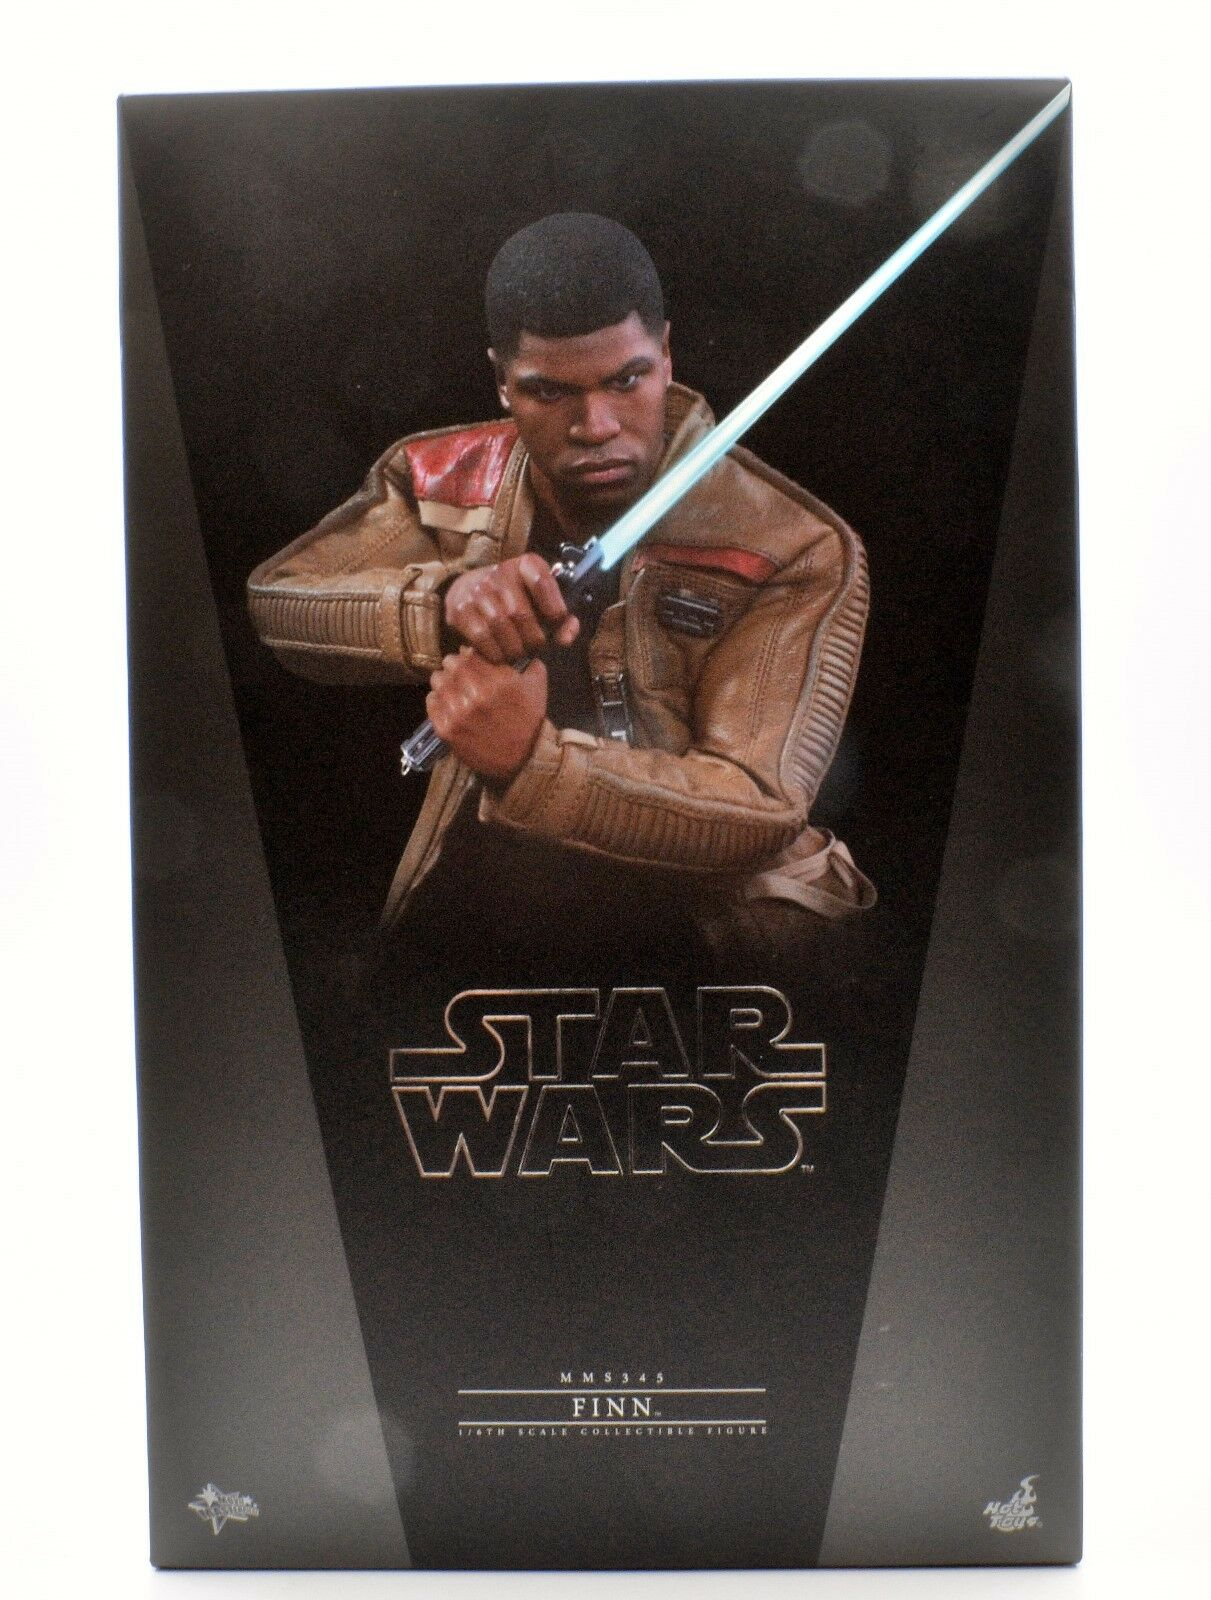 Star Wars Hot Toys - Finn 1/6th Scale Collectible Figure - MMS345